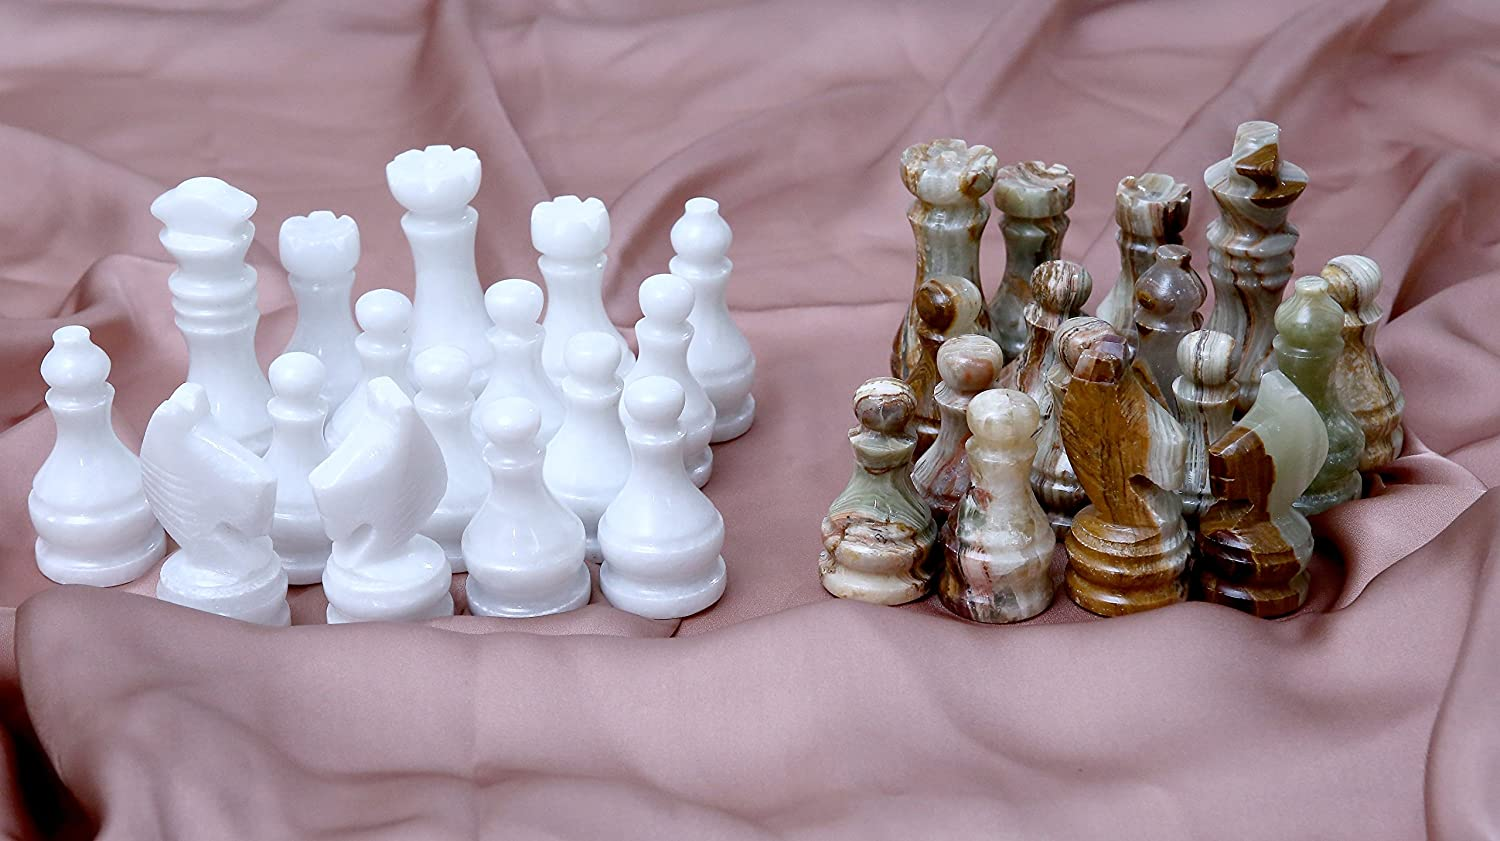 Radicaln Marble Chess Pieces